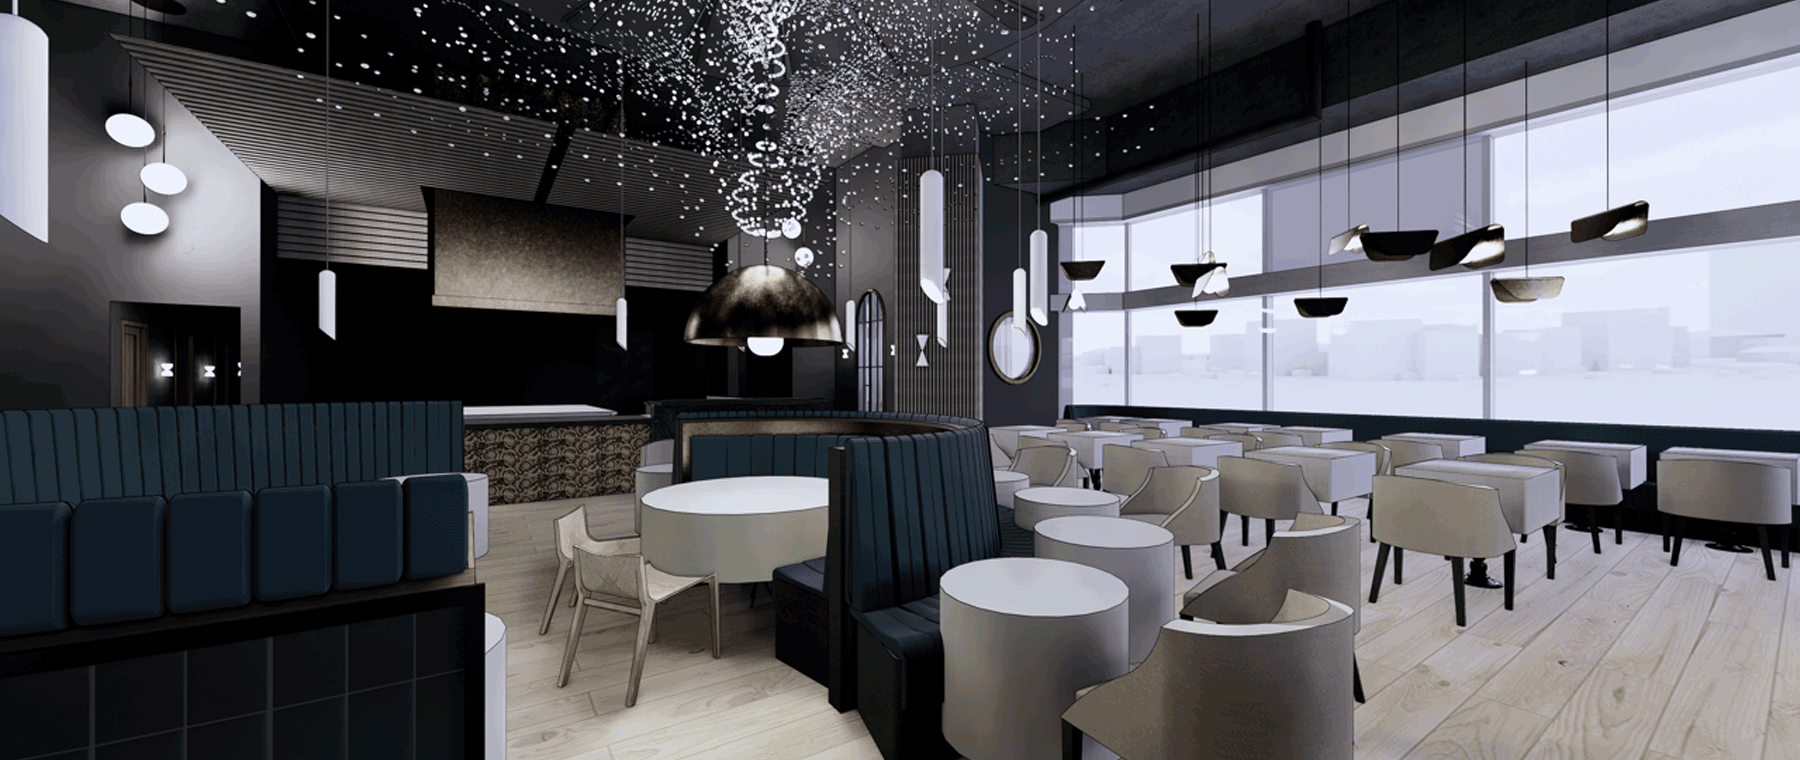 A peek inside Aiana, the new upscale restaurant in the old Hy's